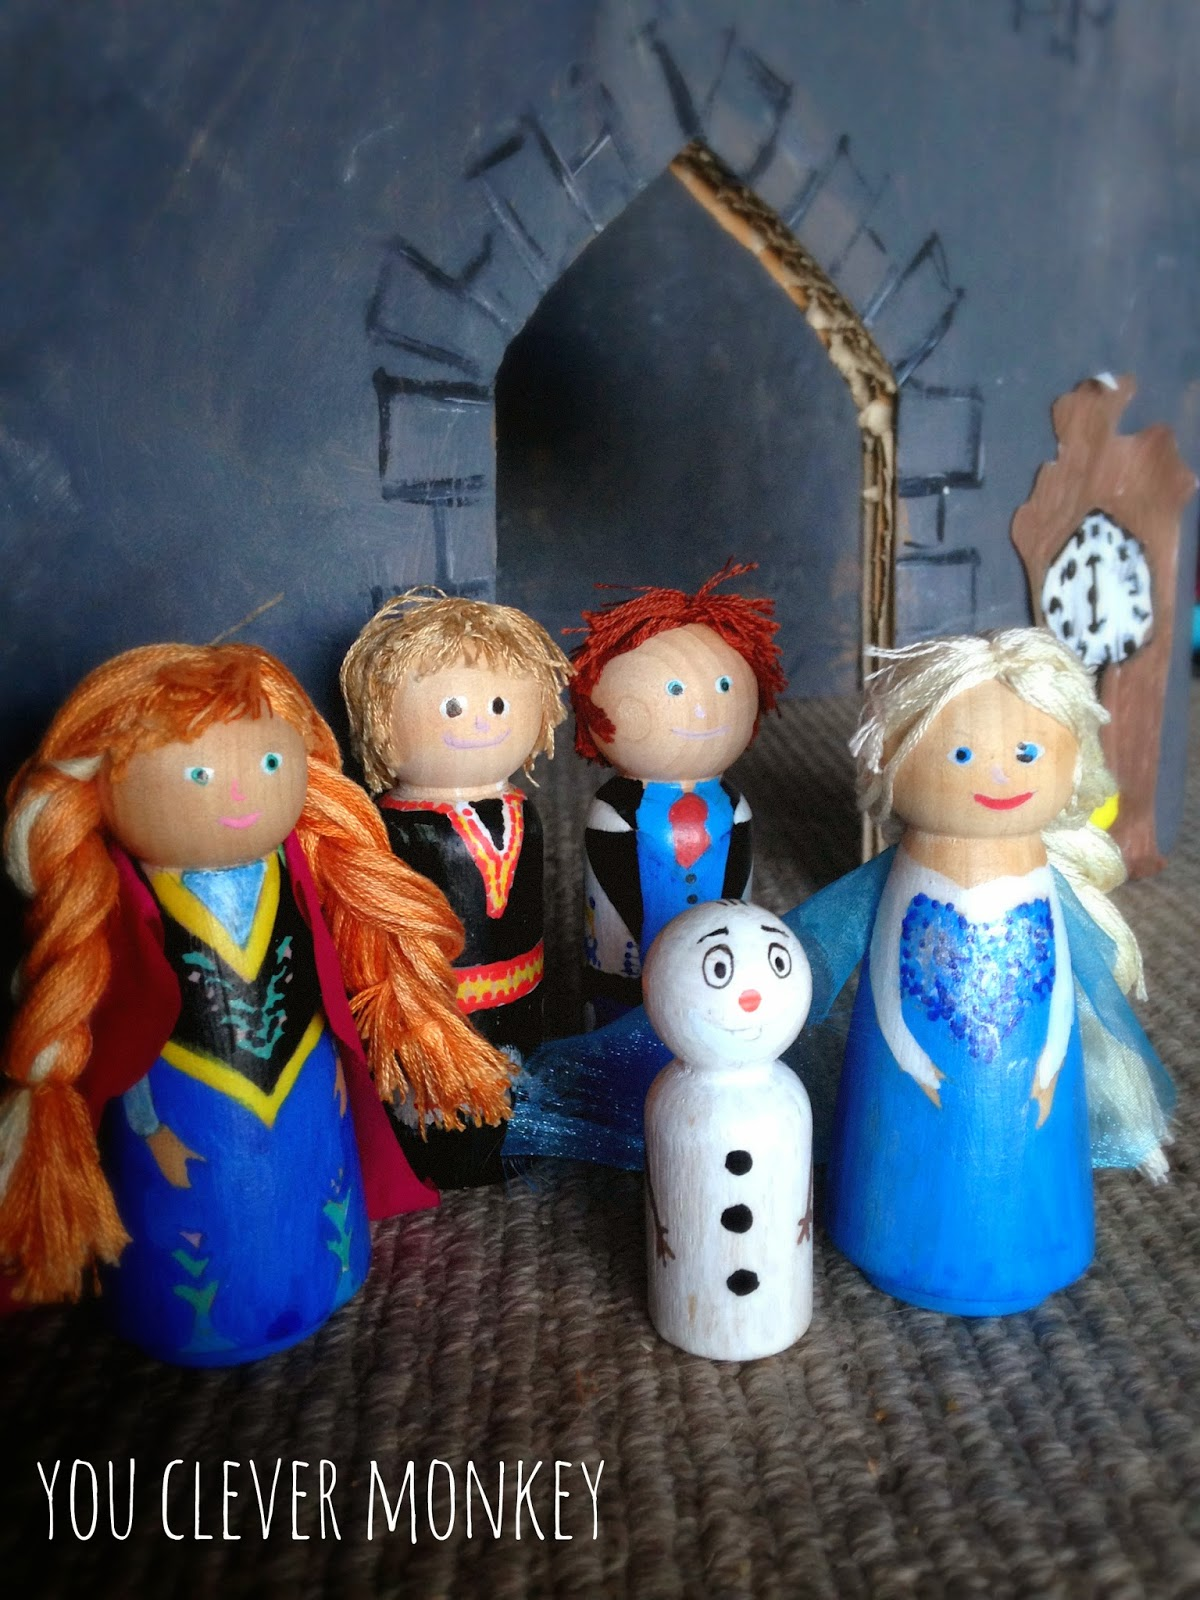 DIY Frozen Peg People - how to make your own Frozen characters for play from simple wooden peg dolls. Step by step instructions to help you create your own | you clever monkey